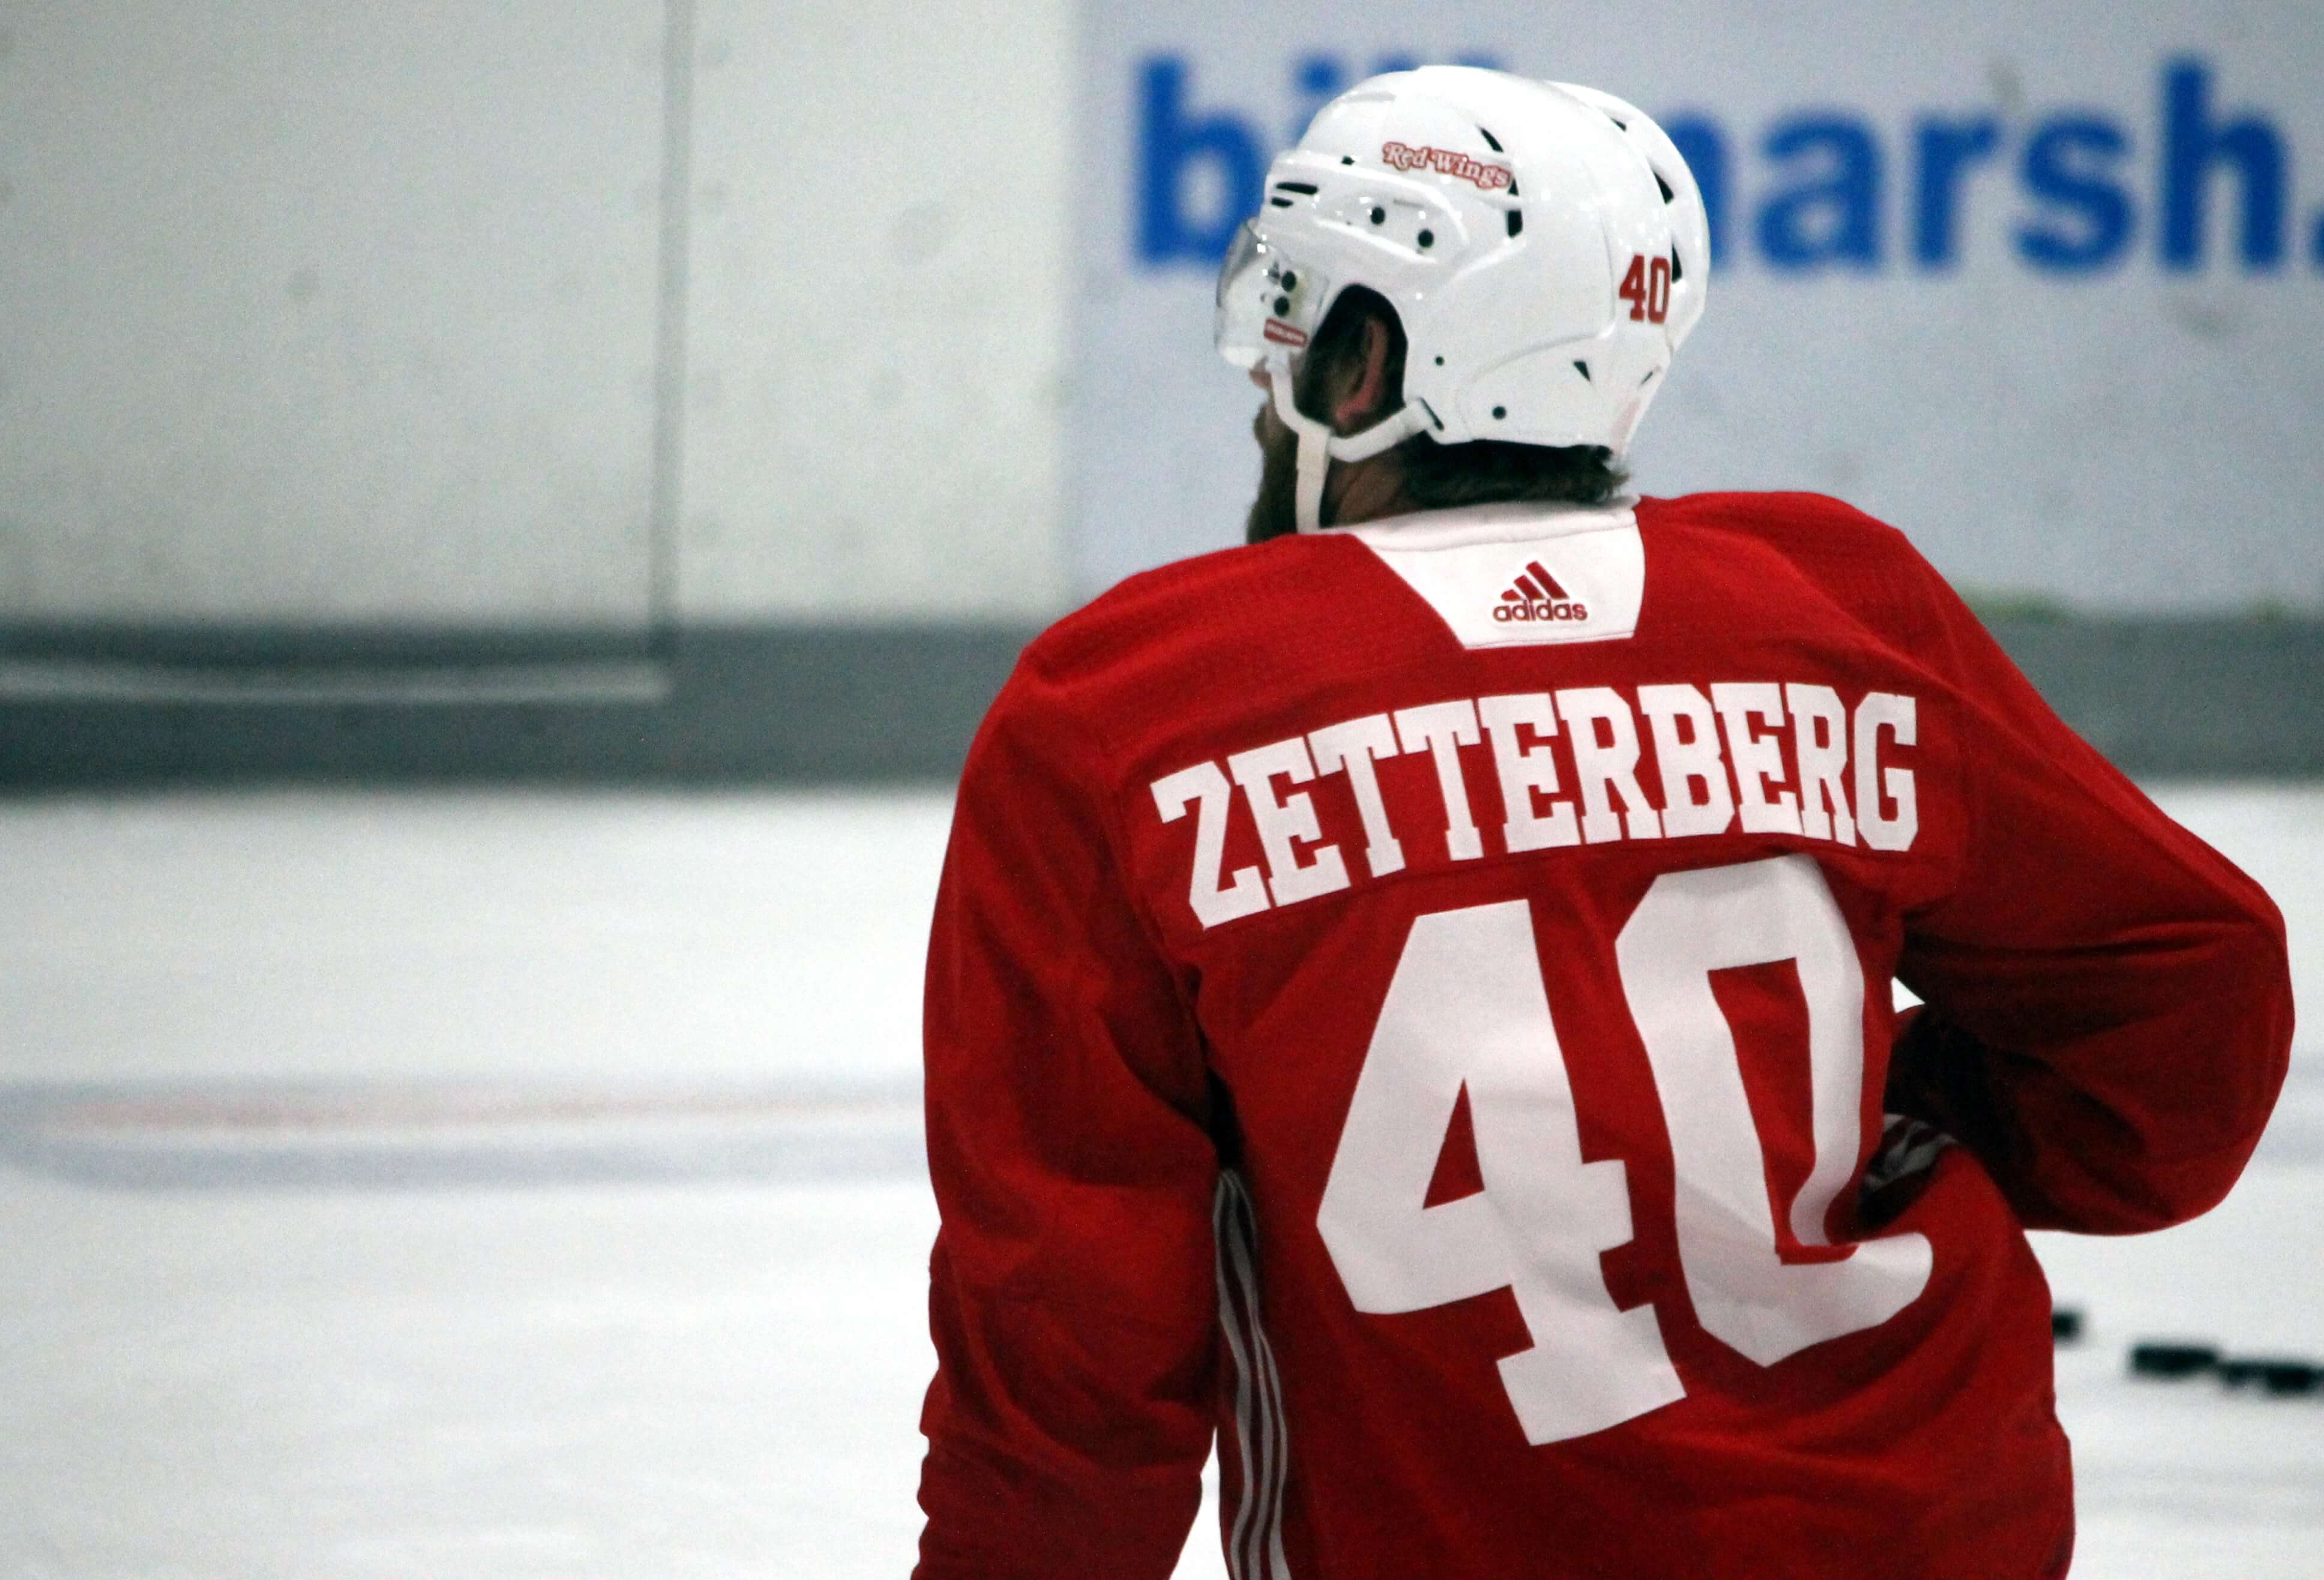 Centre Ice Arena | DRW Training Camp Arena Launches Crowdfunding